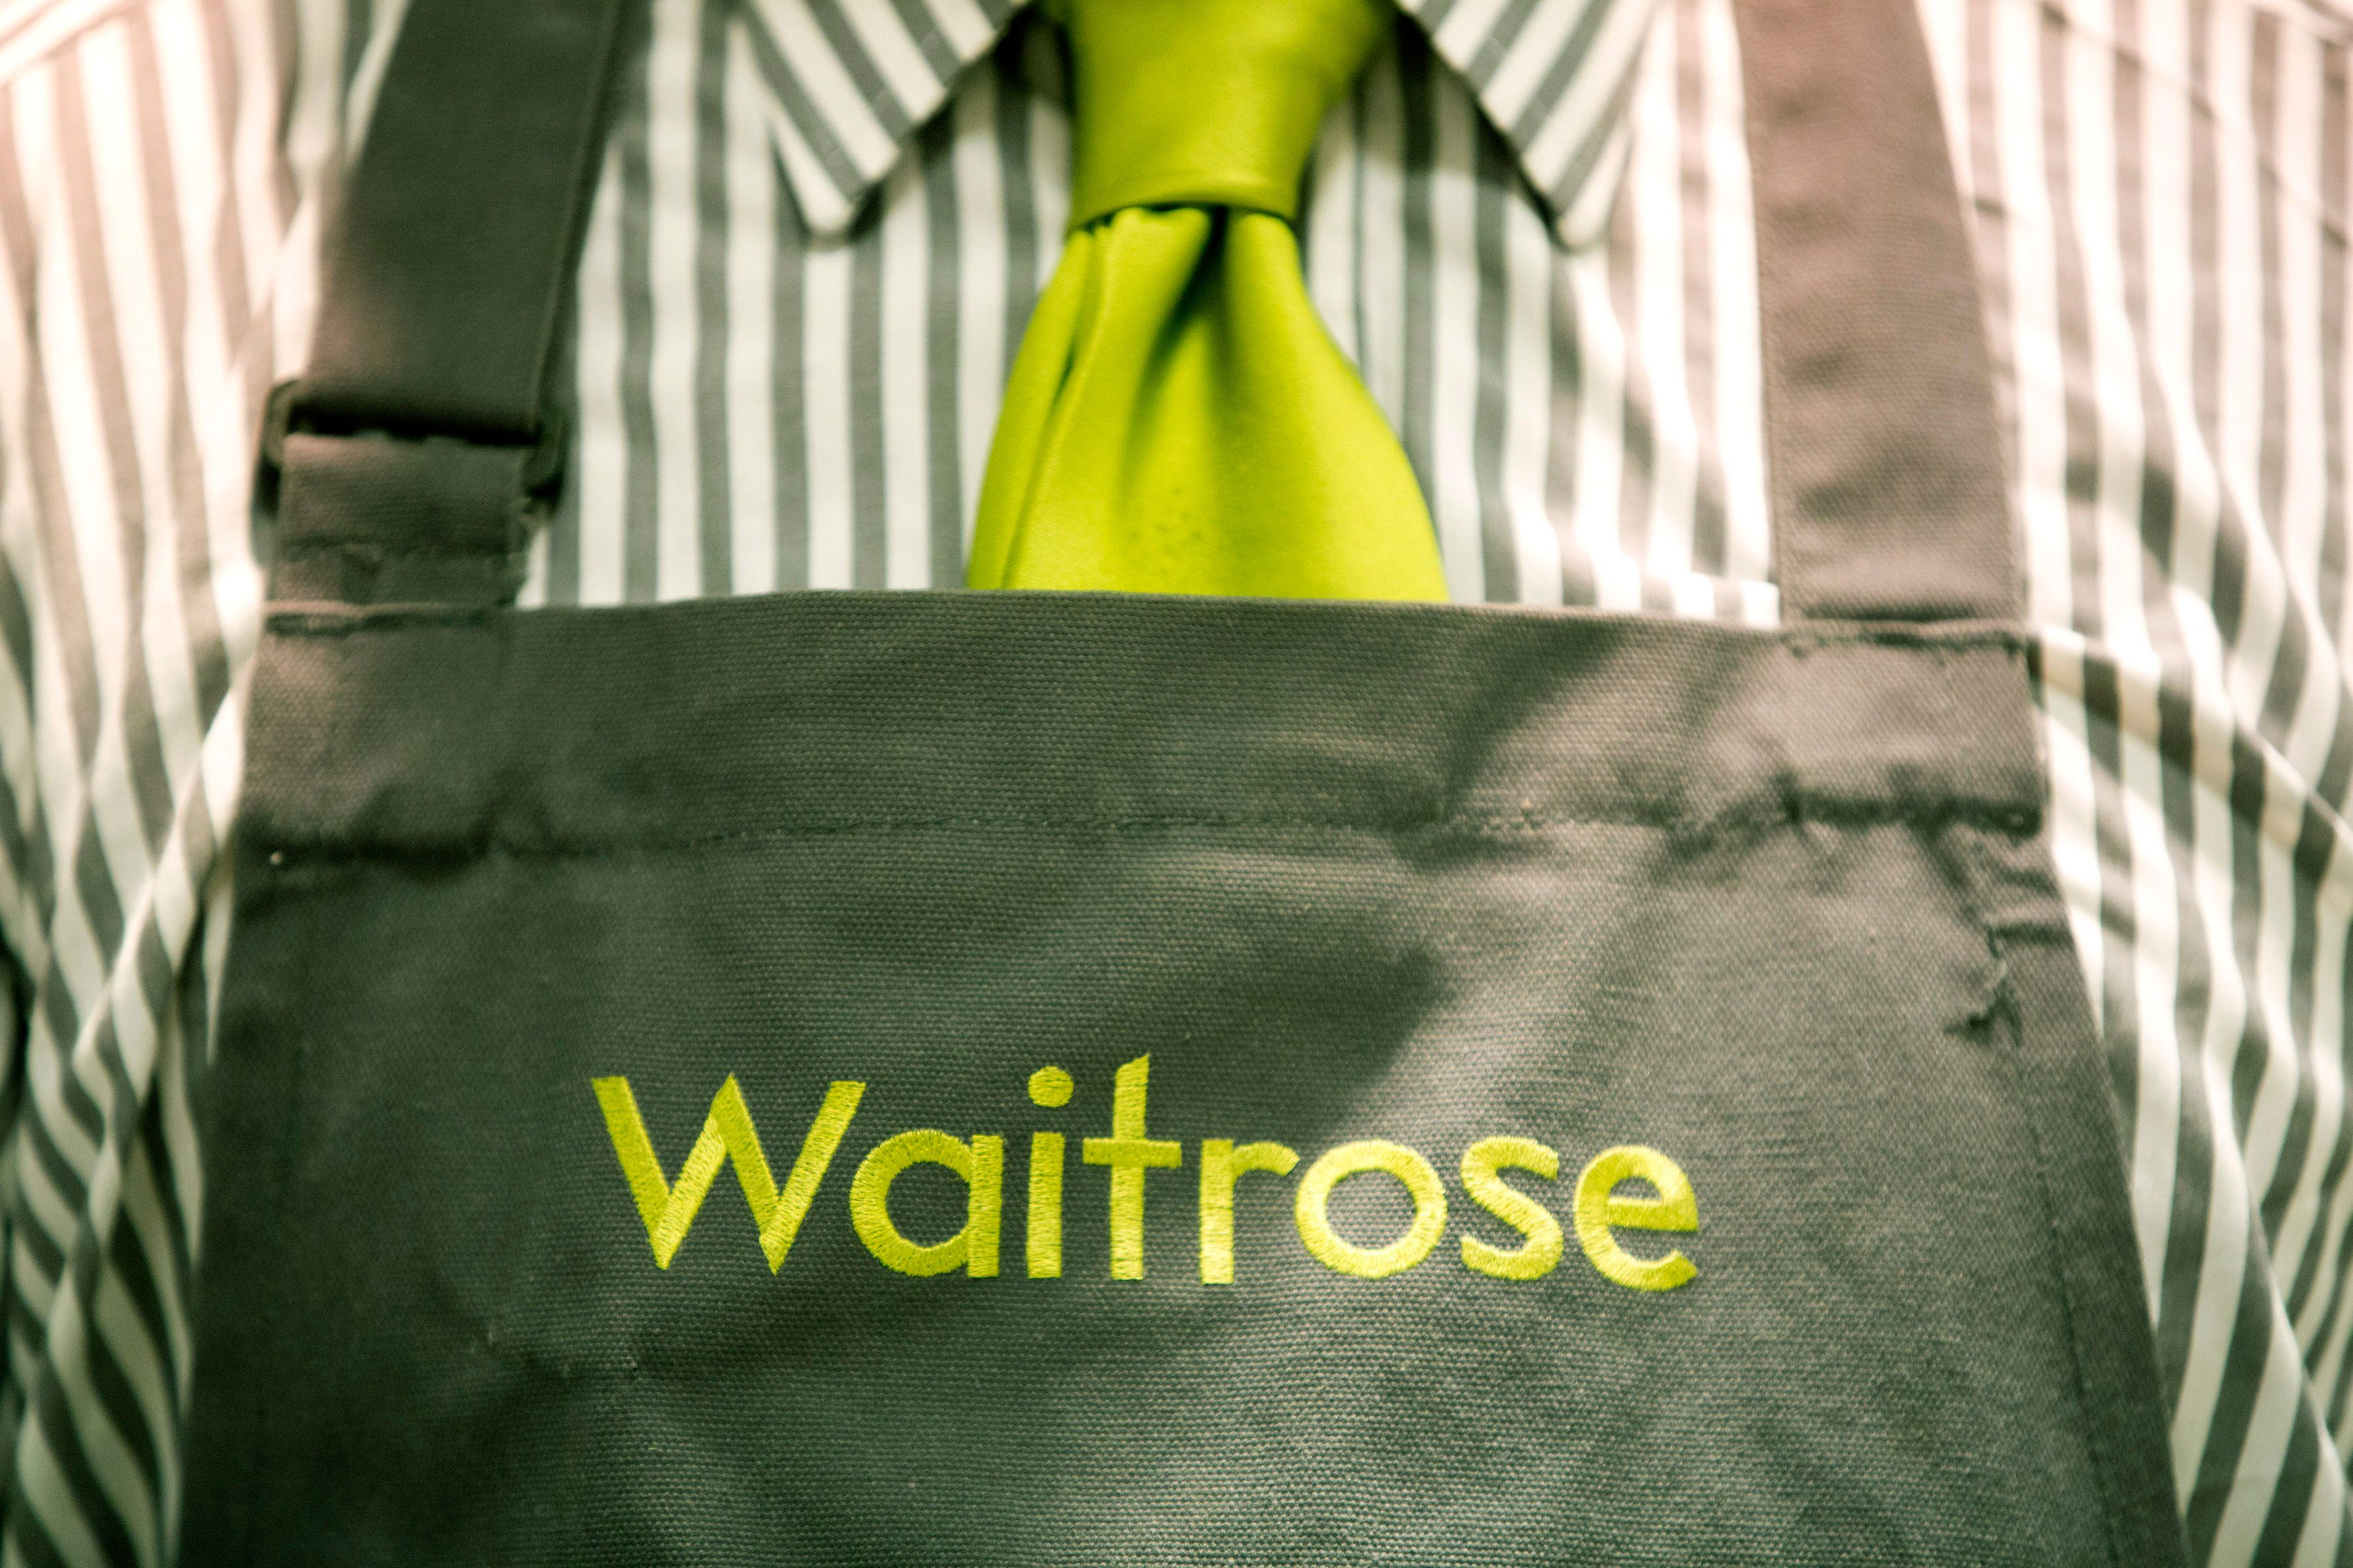 Would You Let Waitrose Into Your House And Fridge When You're Not At